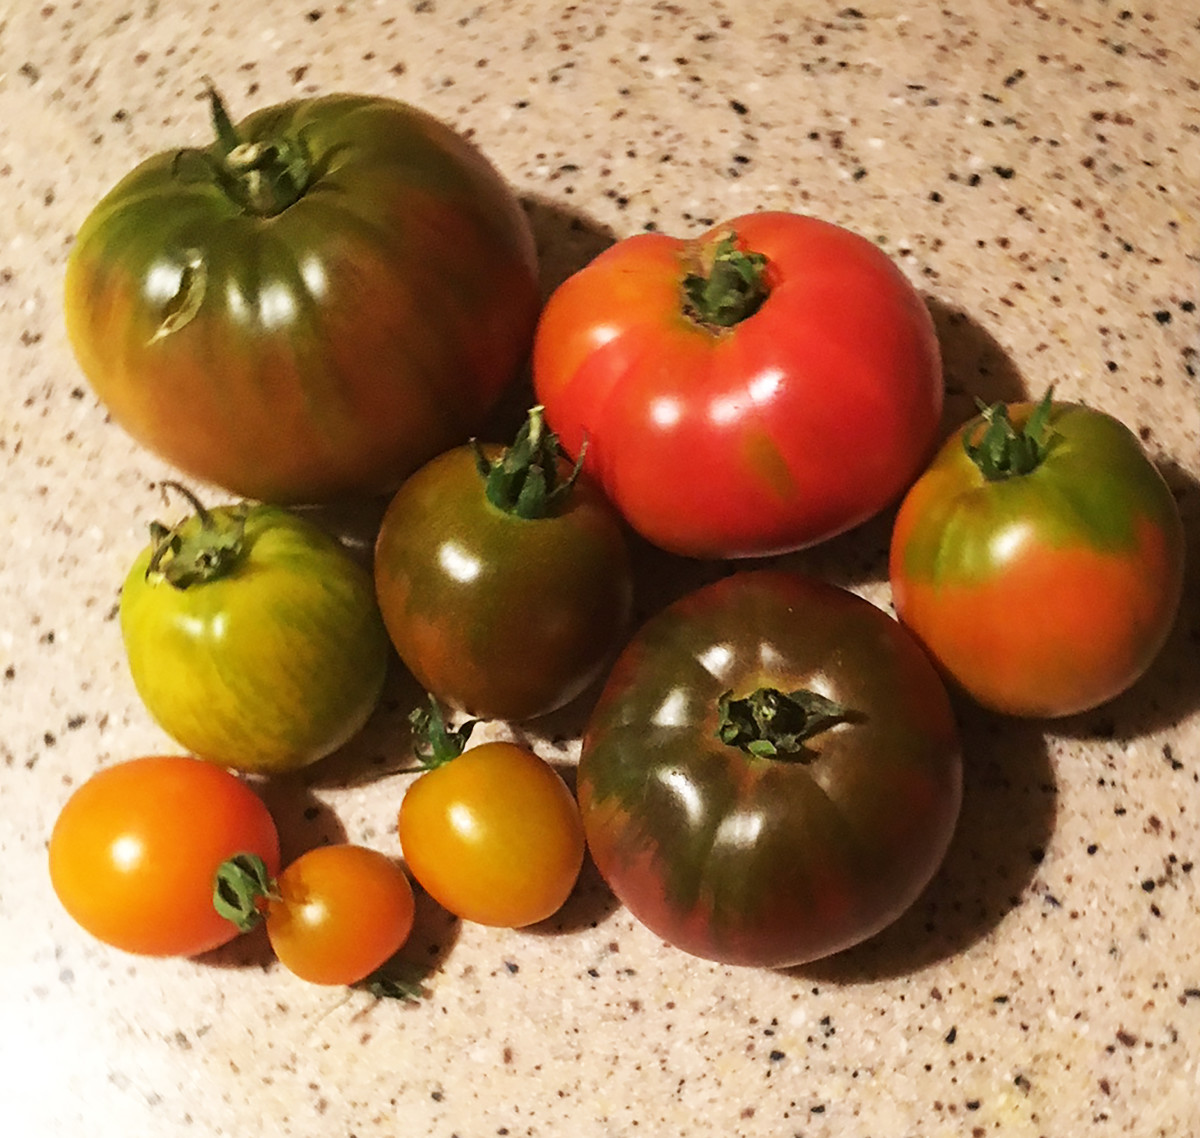 A Selection of Homegrown Heirloom Tomato varieties